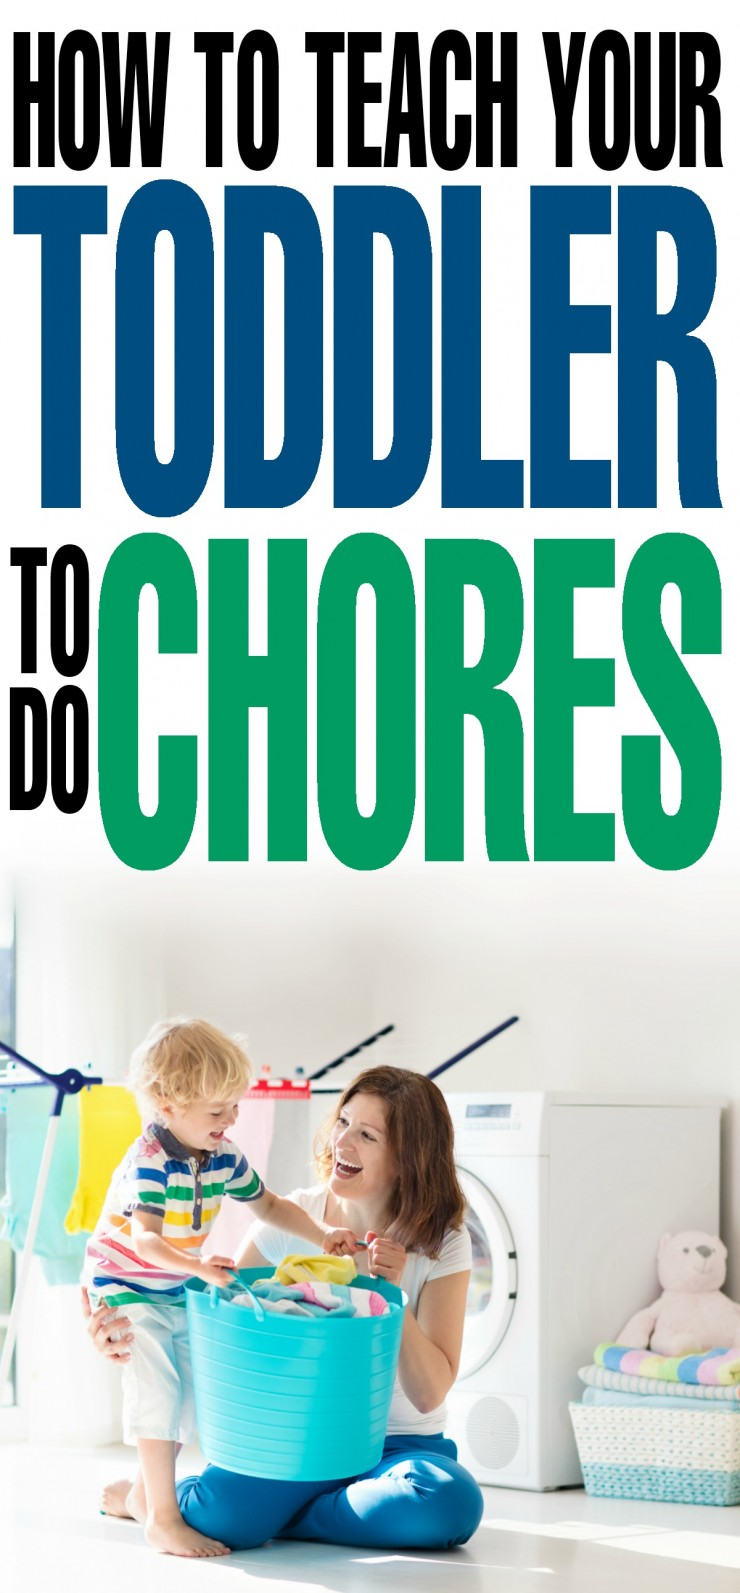 How to Teach Your Toddler to do Chores